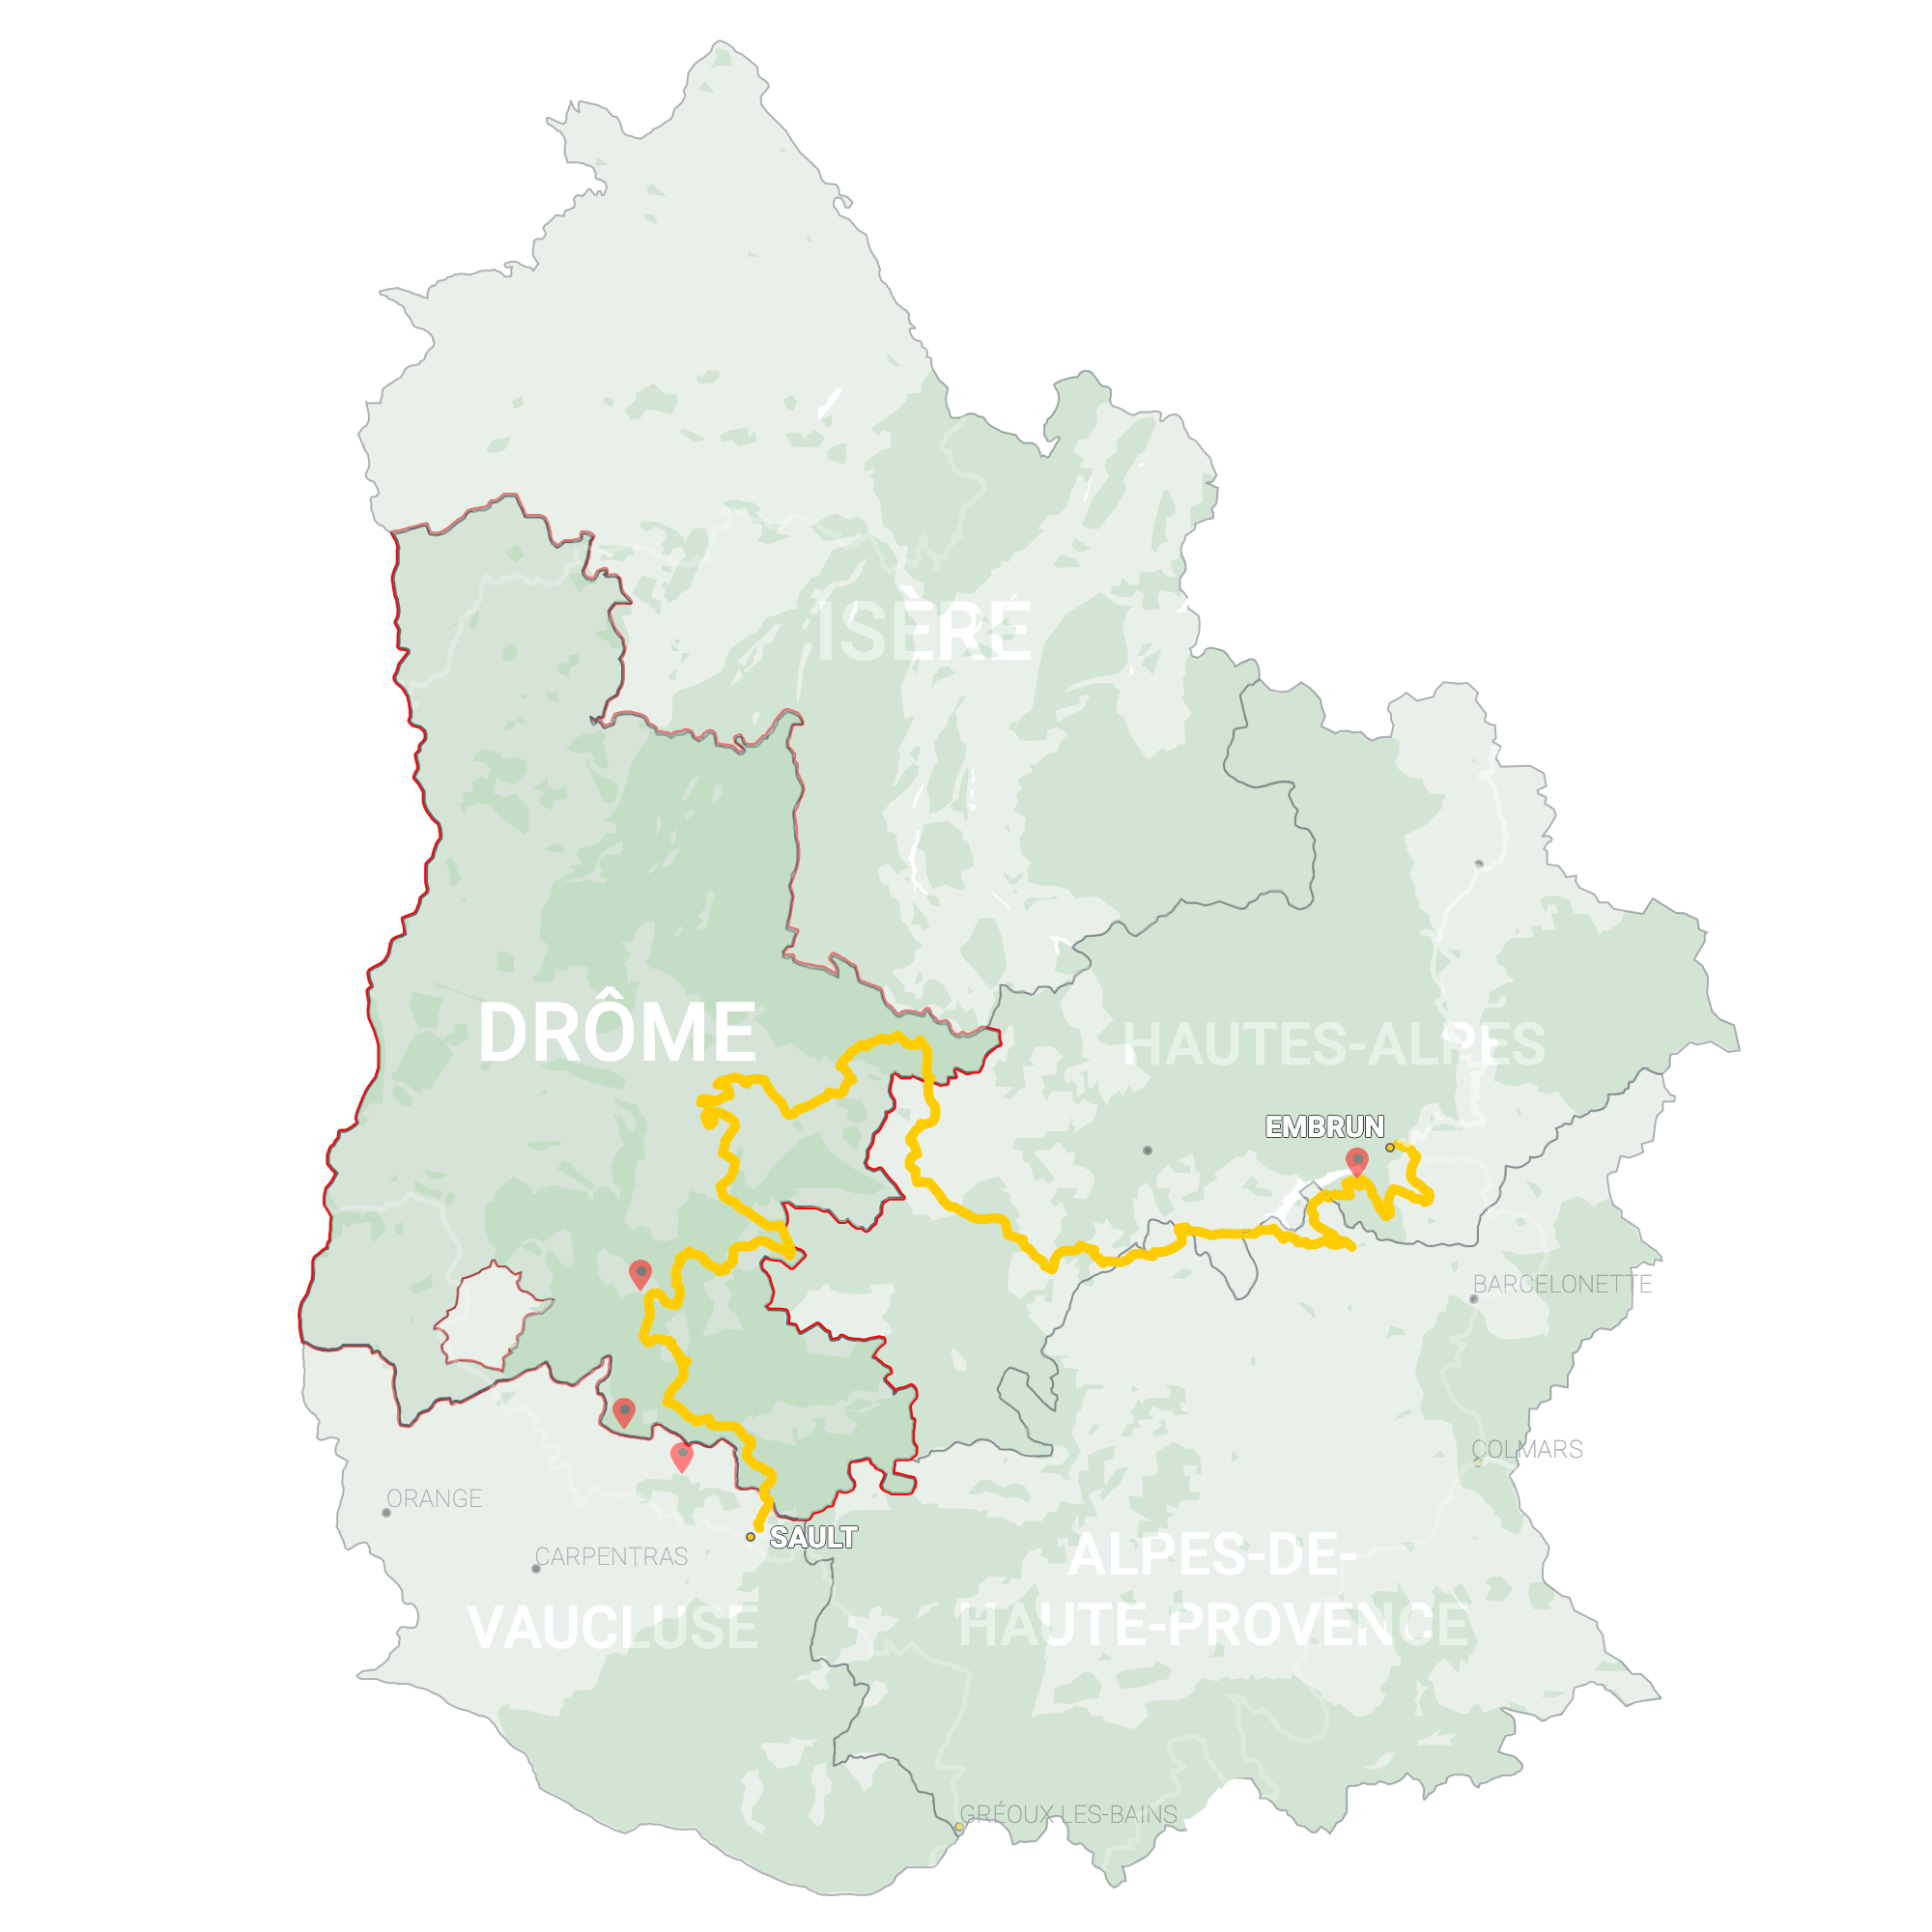 GLR 7 Region Drôme Map Overview